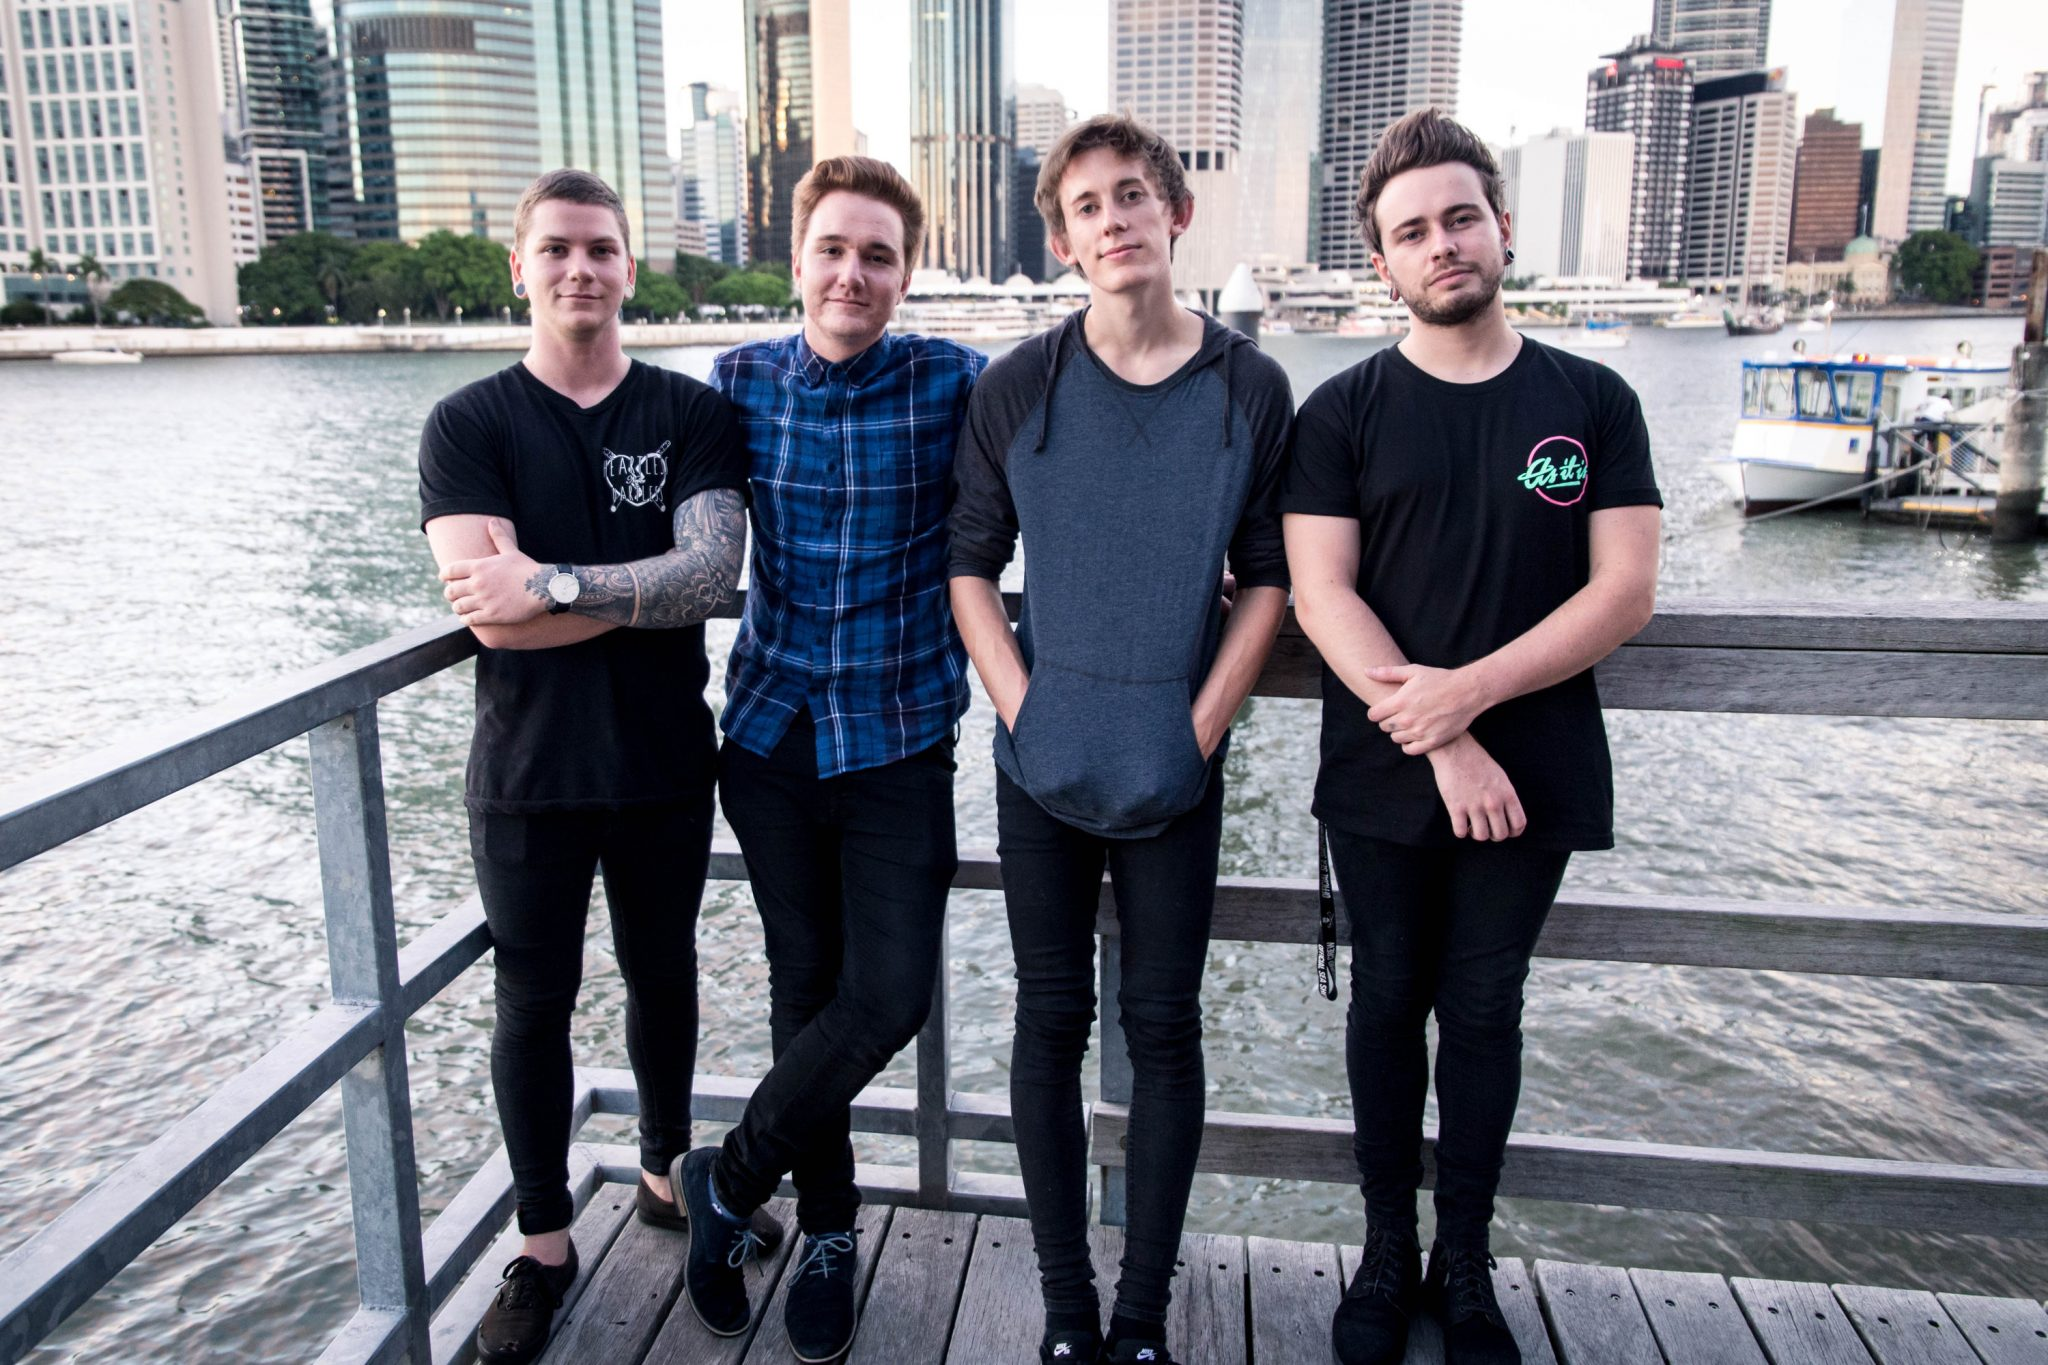 music video recommendation-new heights-shorelines-Australia-indie rock-punk rock-indie music-new music-music video-music blog-indie blog-wolfinasuit-wolf in a suit